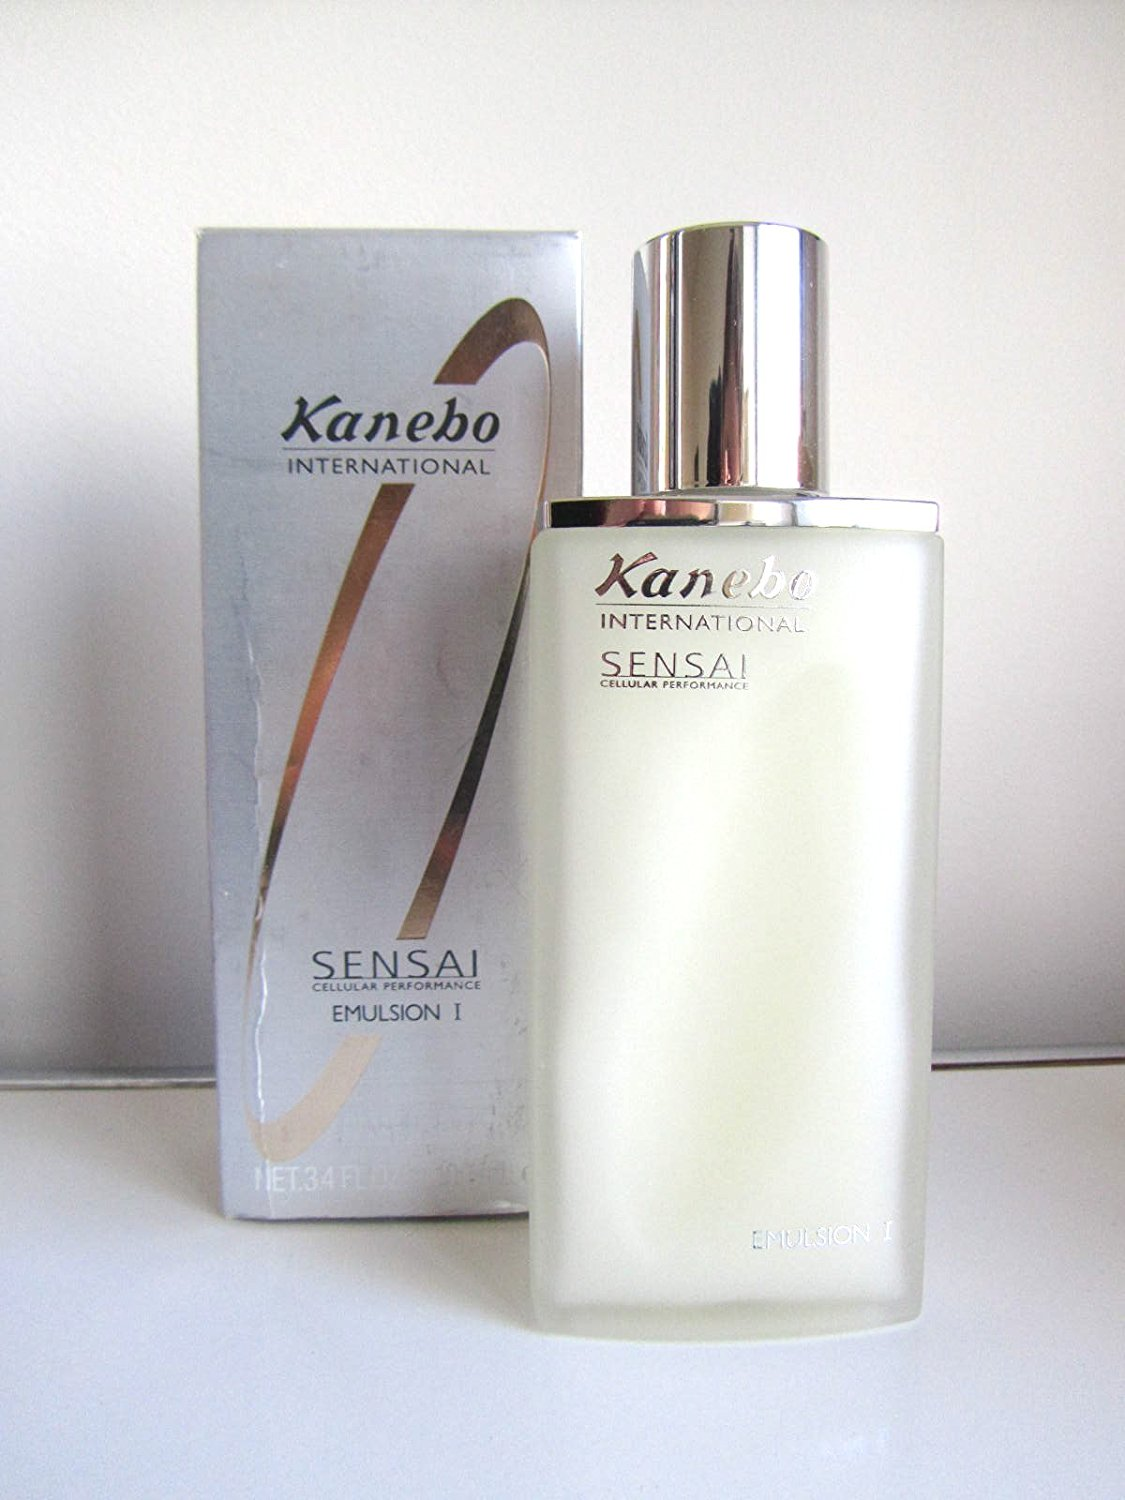 0868c56f4e5 Get Quotations · Kanebo Sensai Cellular Performance Emulsion I (Oily to  Combination Skin) (Box Shows Some